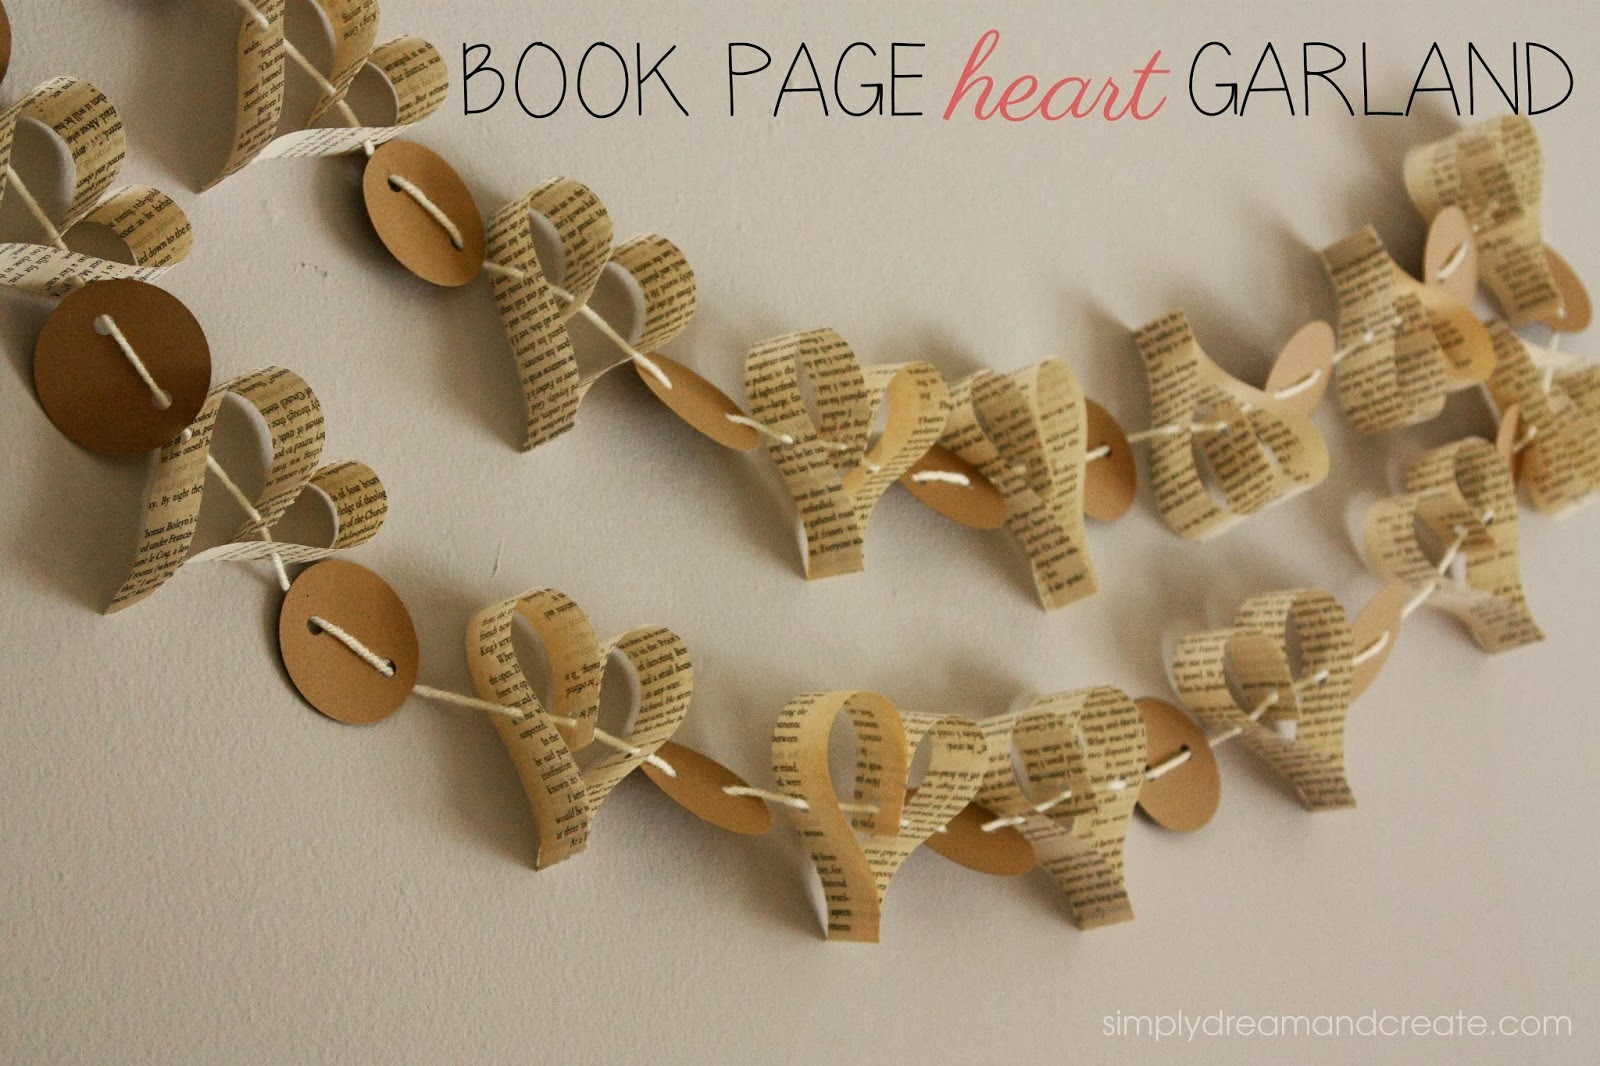 http://www.simplydreamandcreate.com/2014/02/book-page-heart-garland.html